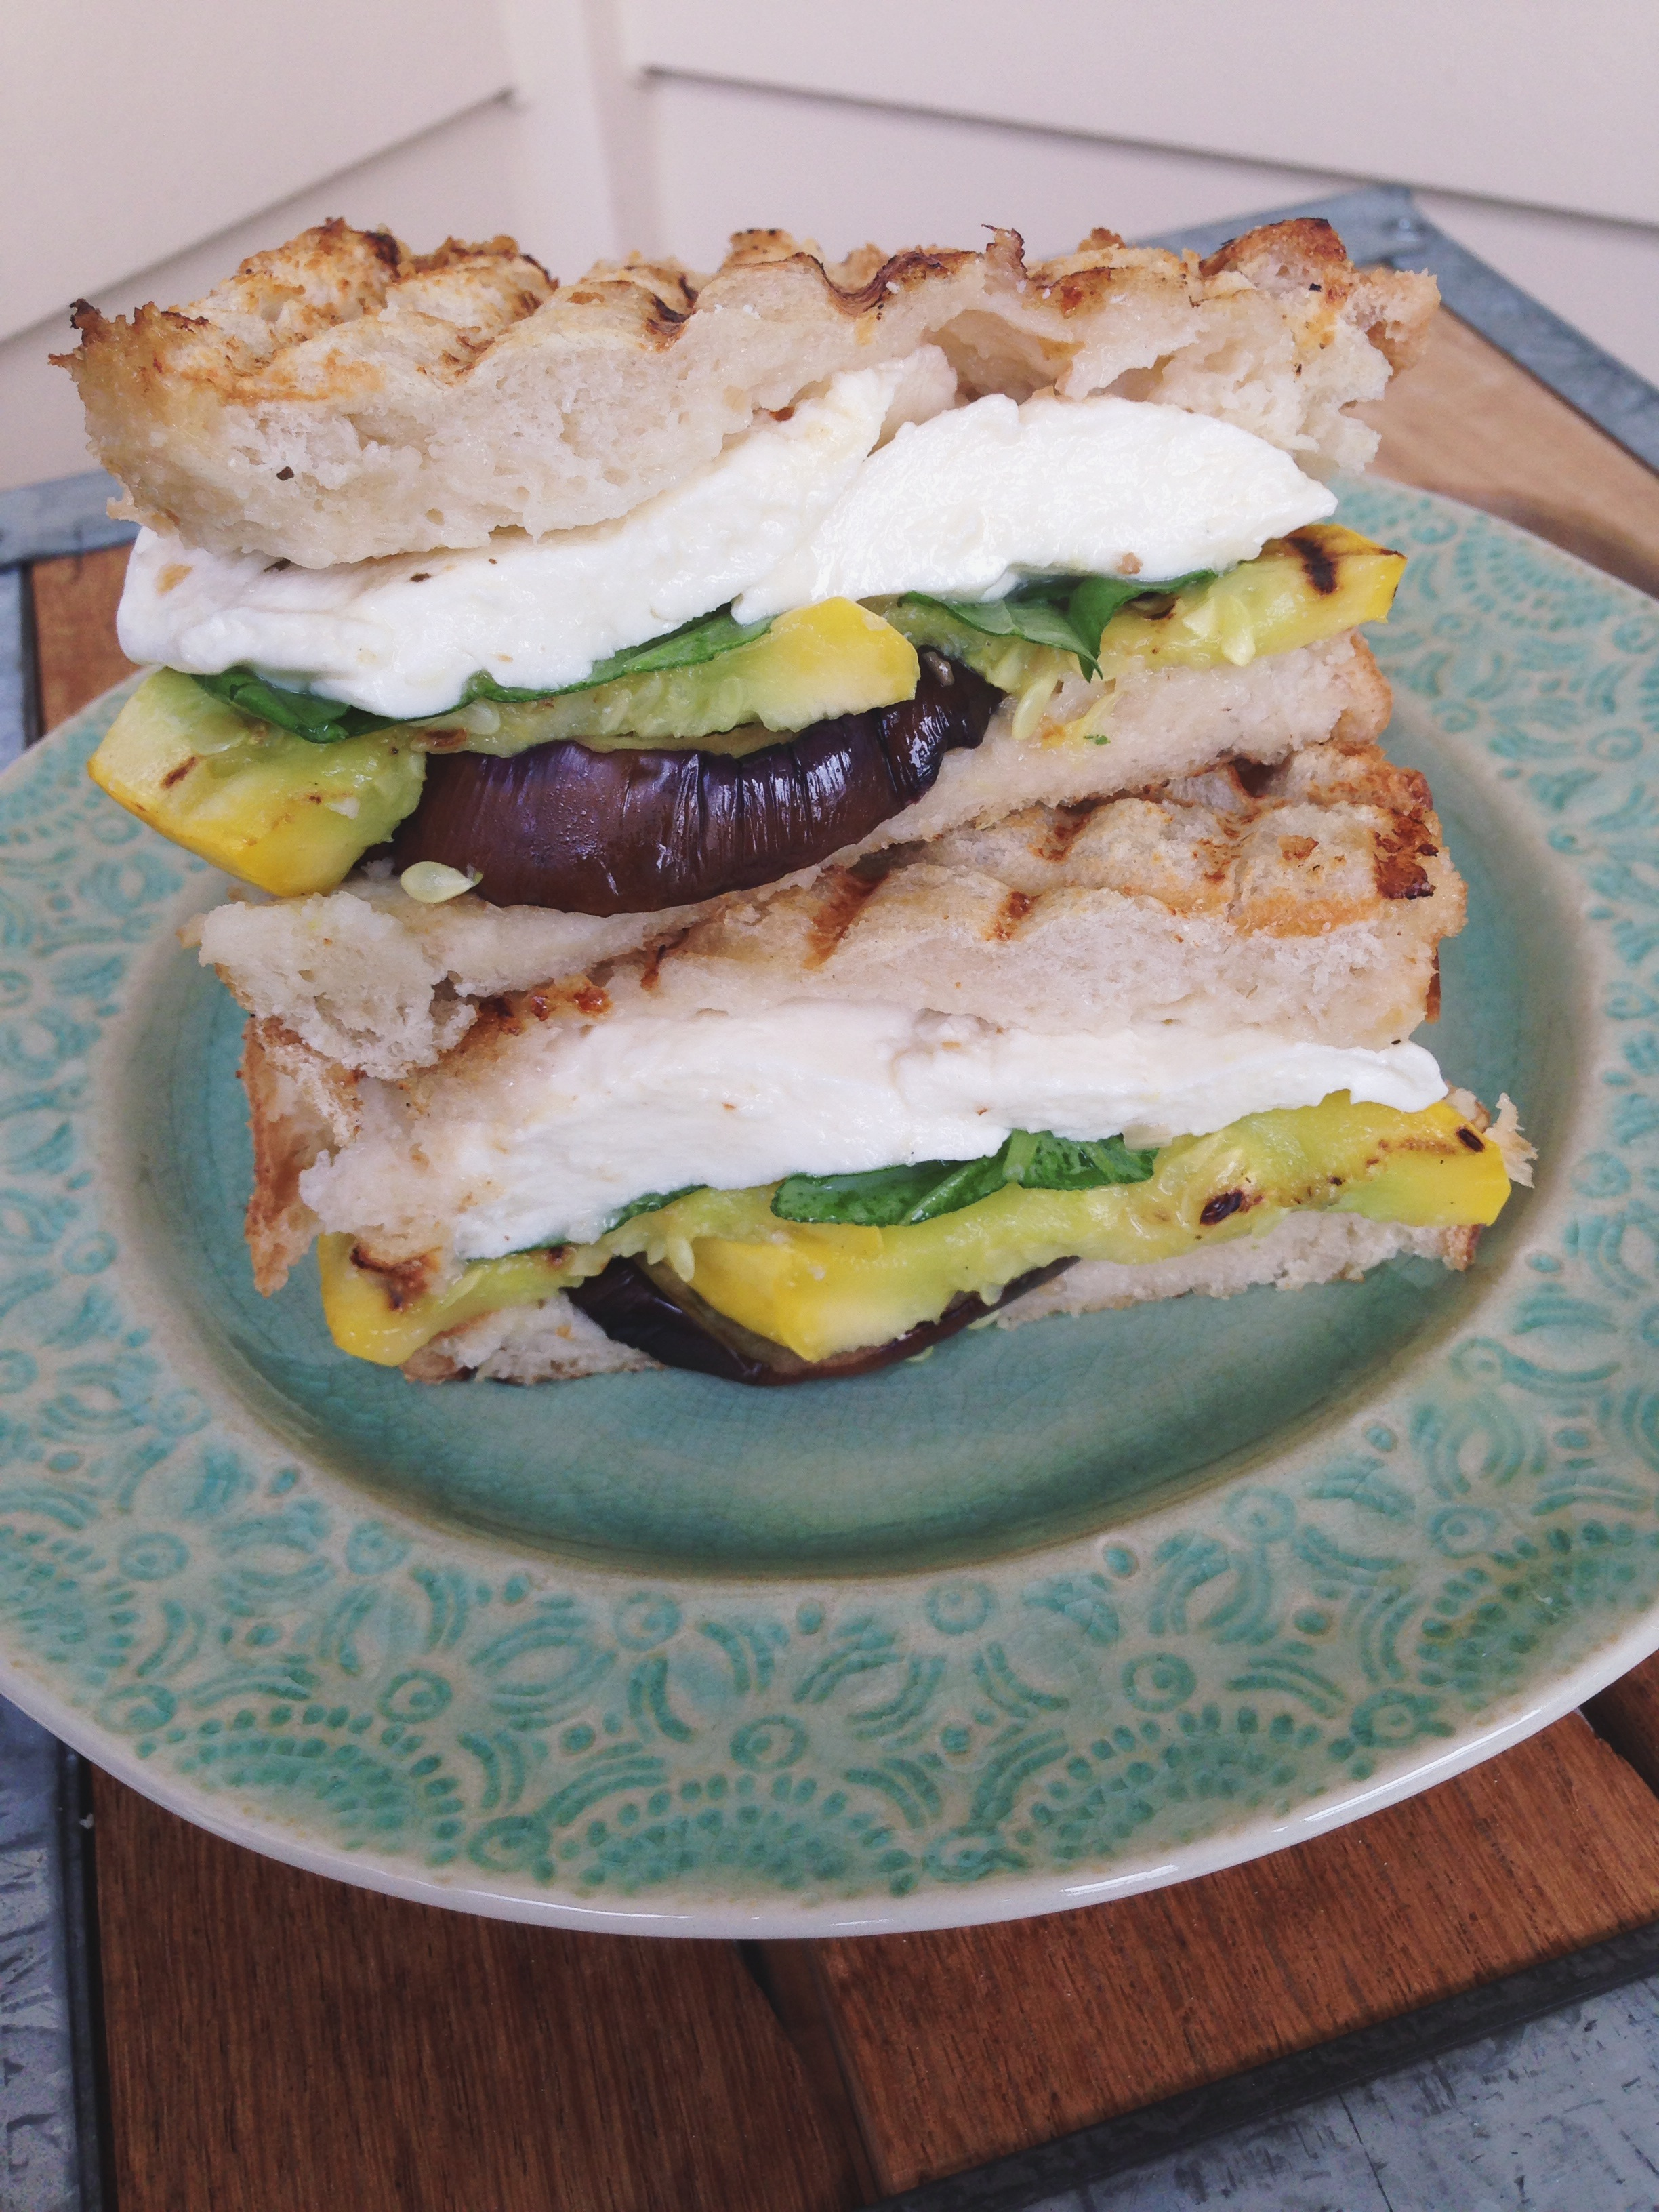 ... cheese sandwiches this panini is also incredibly easy to make at home